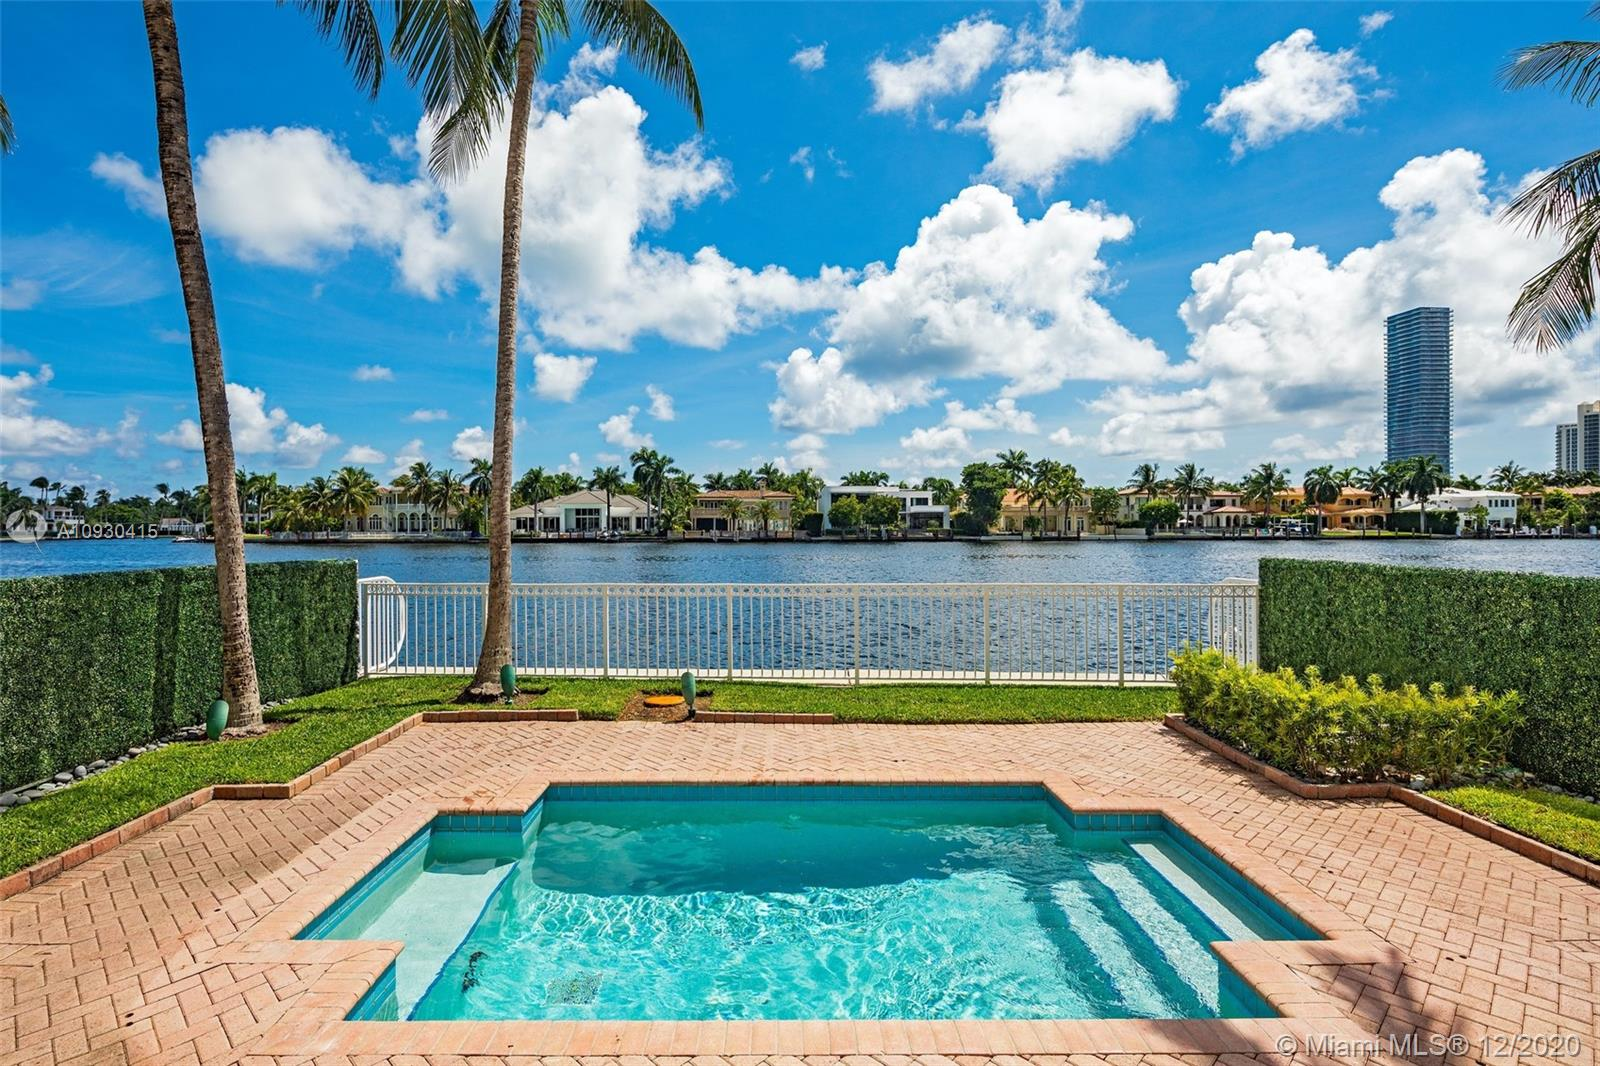 Rarely available & highly sought after! Beautiful intracoastal facing townhouse in Porto Vita, Aventura's most exclusive & luxurious community. This bright 2 story home offers stunning open water views from every room. Features include: elegant & timeless design, soaring 20 ft ceilings & skylights providing natural light throughout, formal dining & living area, Italian chef's kitchen opening into the spacious family room & master wing upstairs includes: sitting area, dual baths/closets & a large terrace facing the water. The private & inviting backyard with a pool offers the perfect space for entertaining & parties. The recently renovated Porto Vita club house has private dining, piano bar, sports lounge, tennis courts, resort style pool, marina & Villa Grande Private Resident's Club.